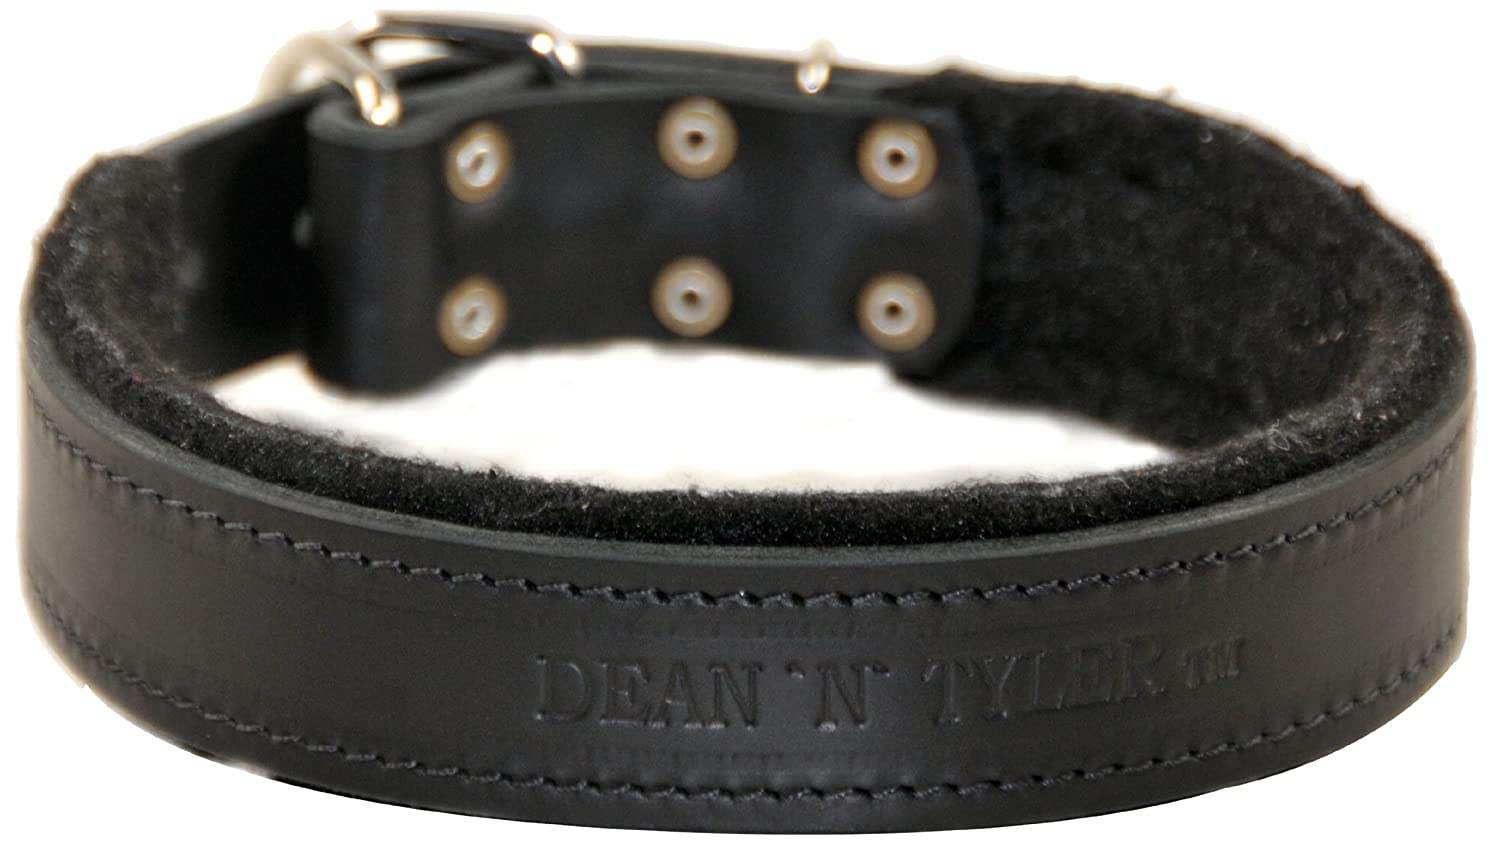 Dean and Tyler DT Delight , Leather Dog Collar with Felt Padding and Strong Hardware Black Size 38-Inch by 1-Inch Fits Neck 36-Inch to 40-Inch